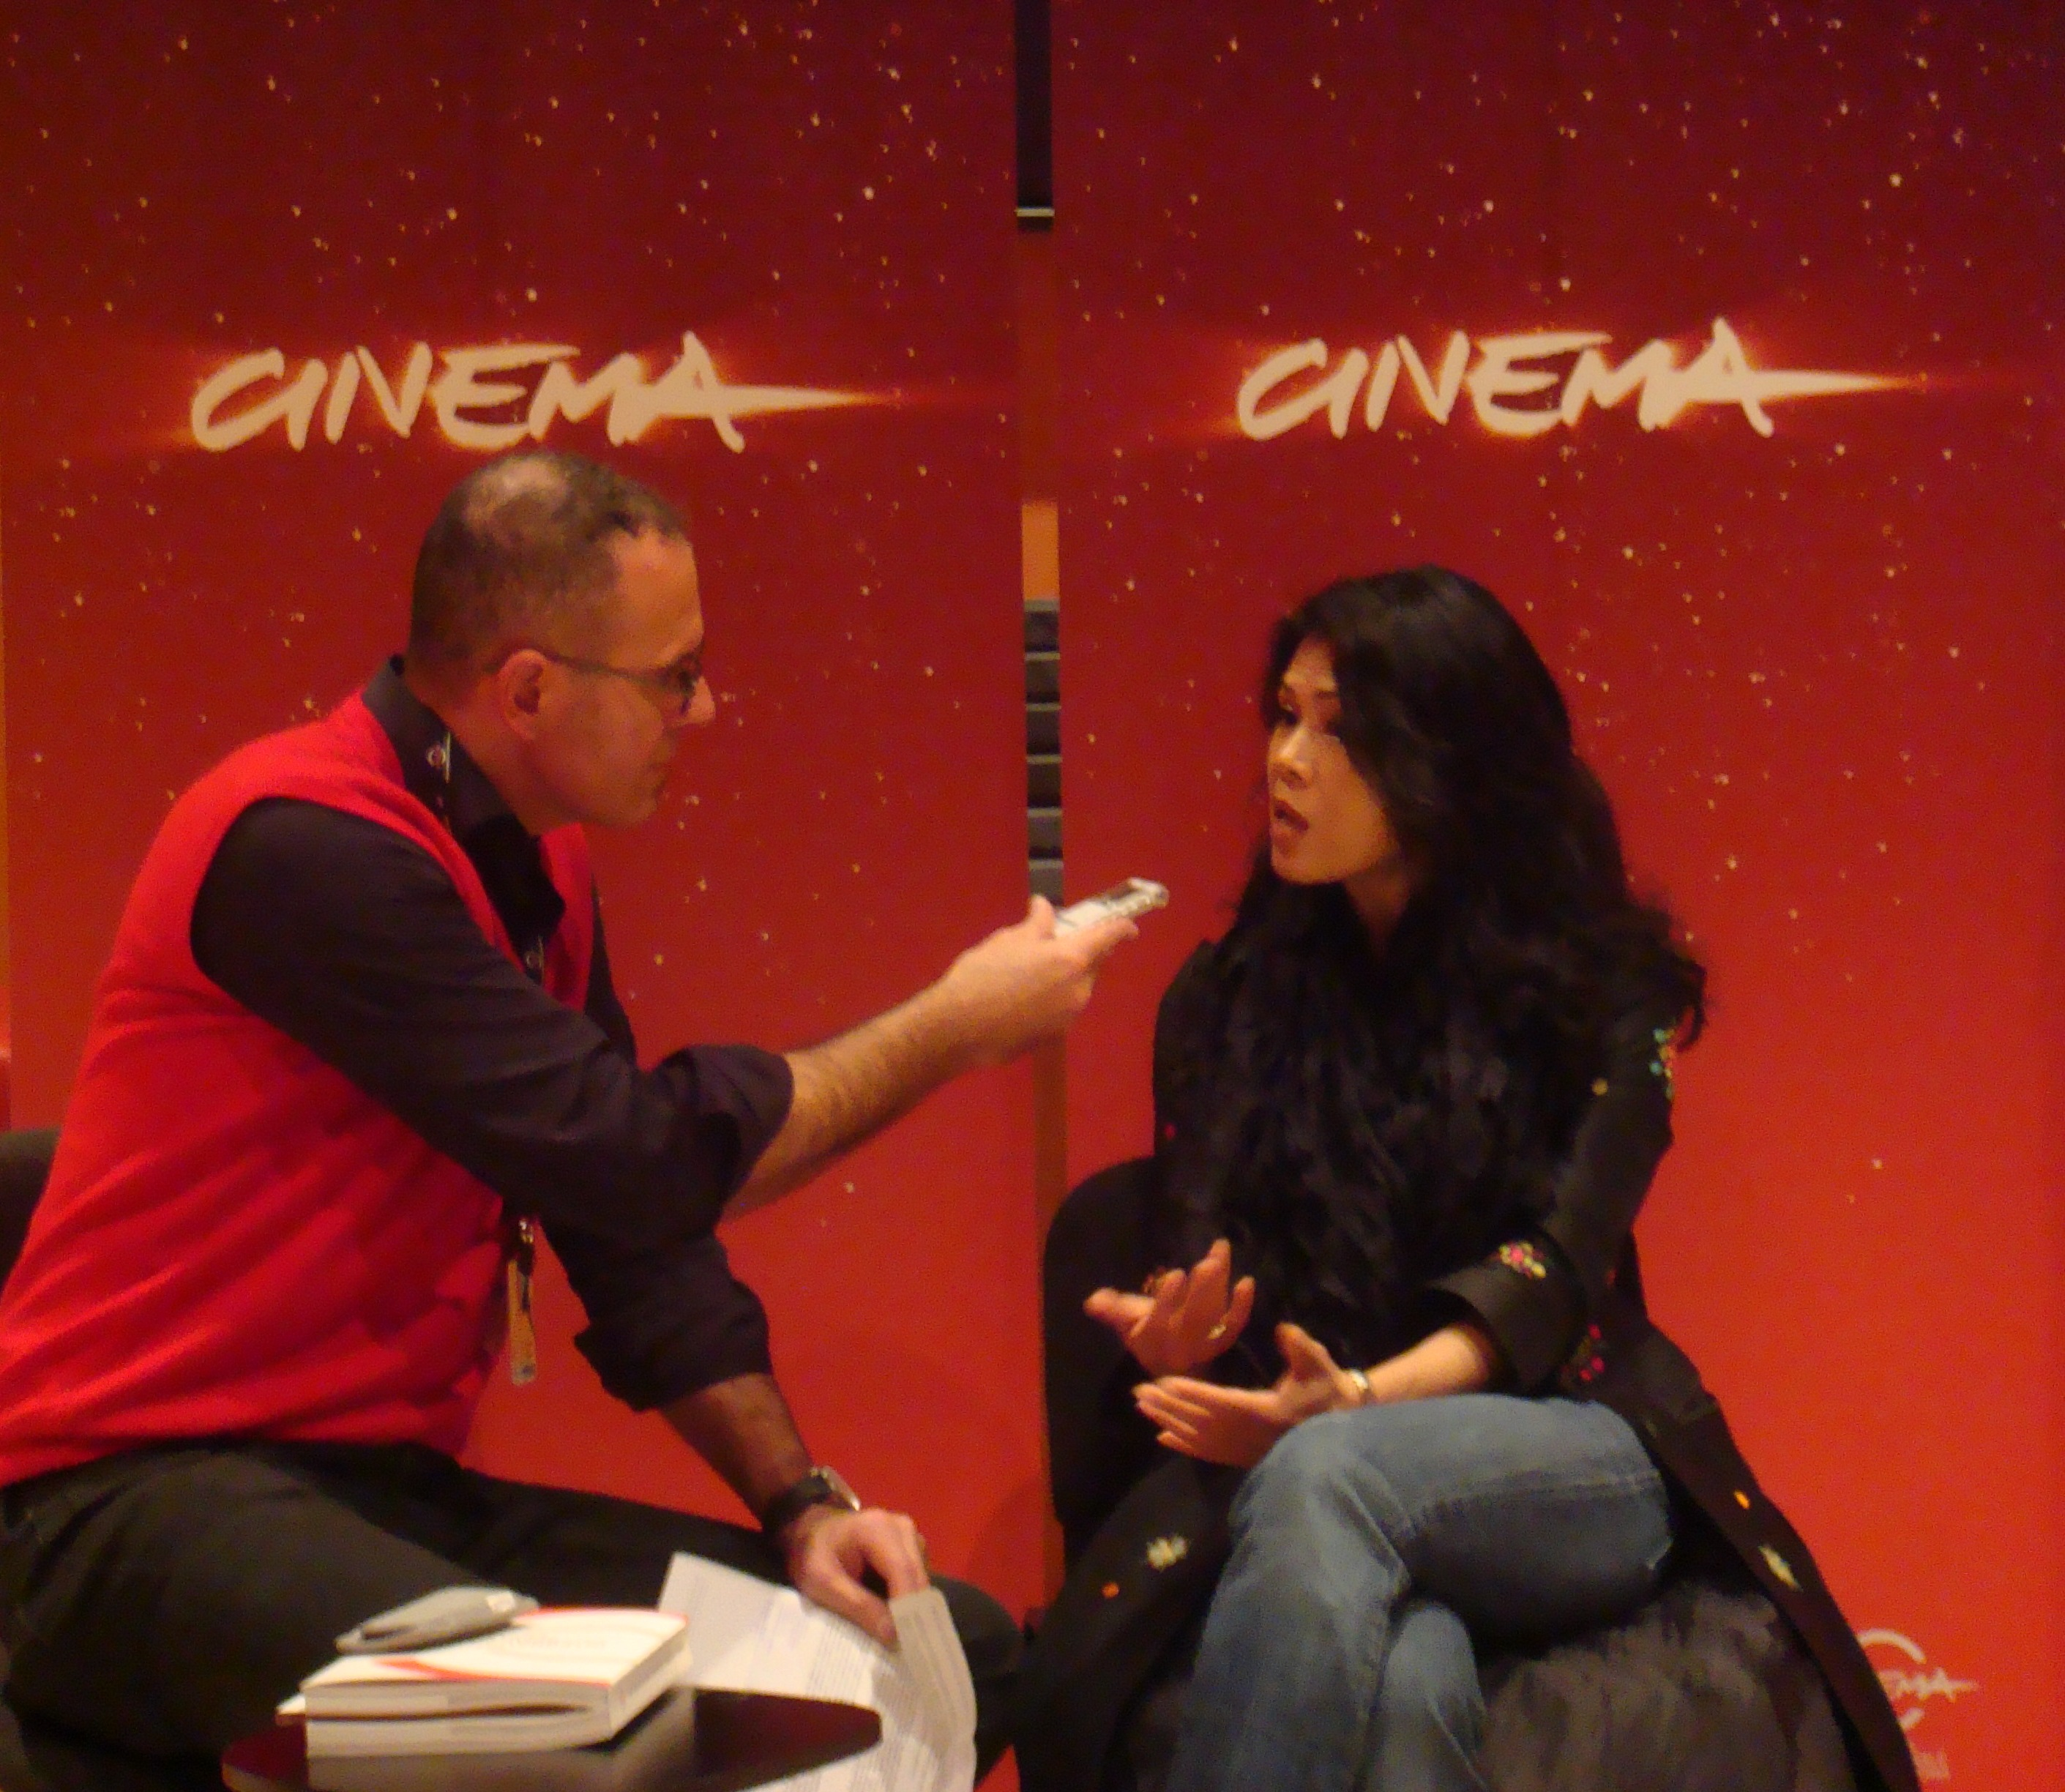 Theary Seng interview at International Rome Film Festival, 2 Nov. 2010